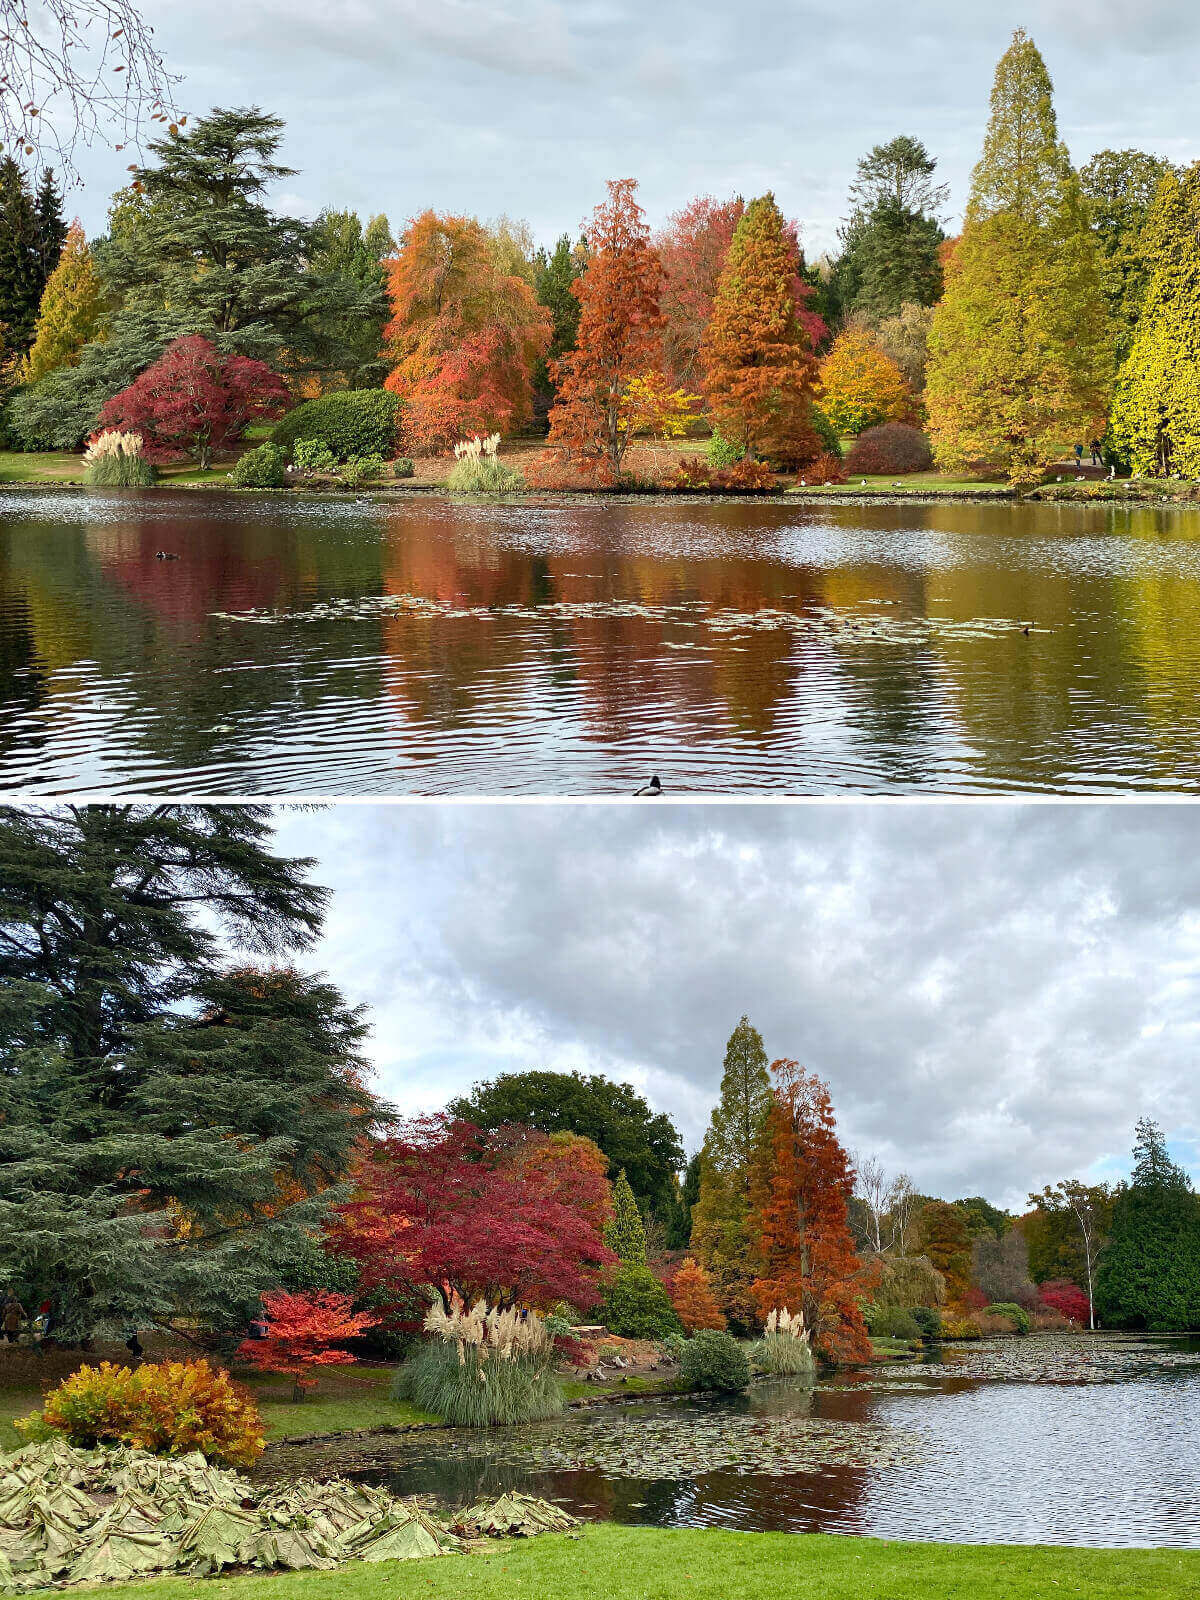 Autumn Sheffield Park and Garden, England